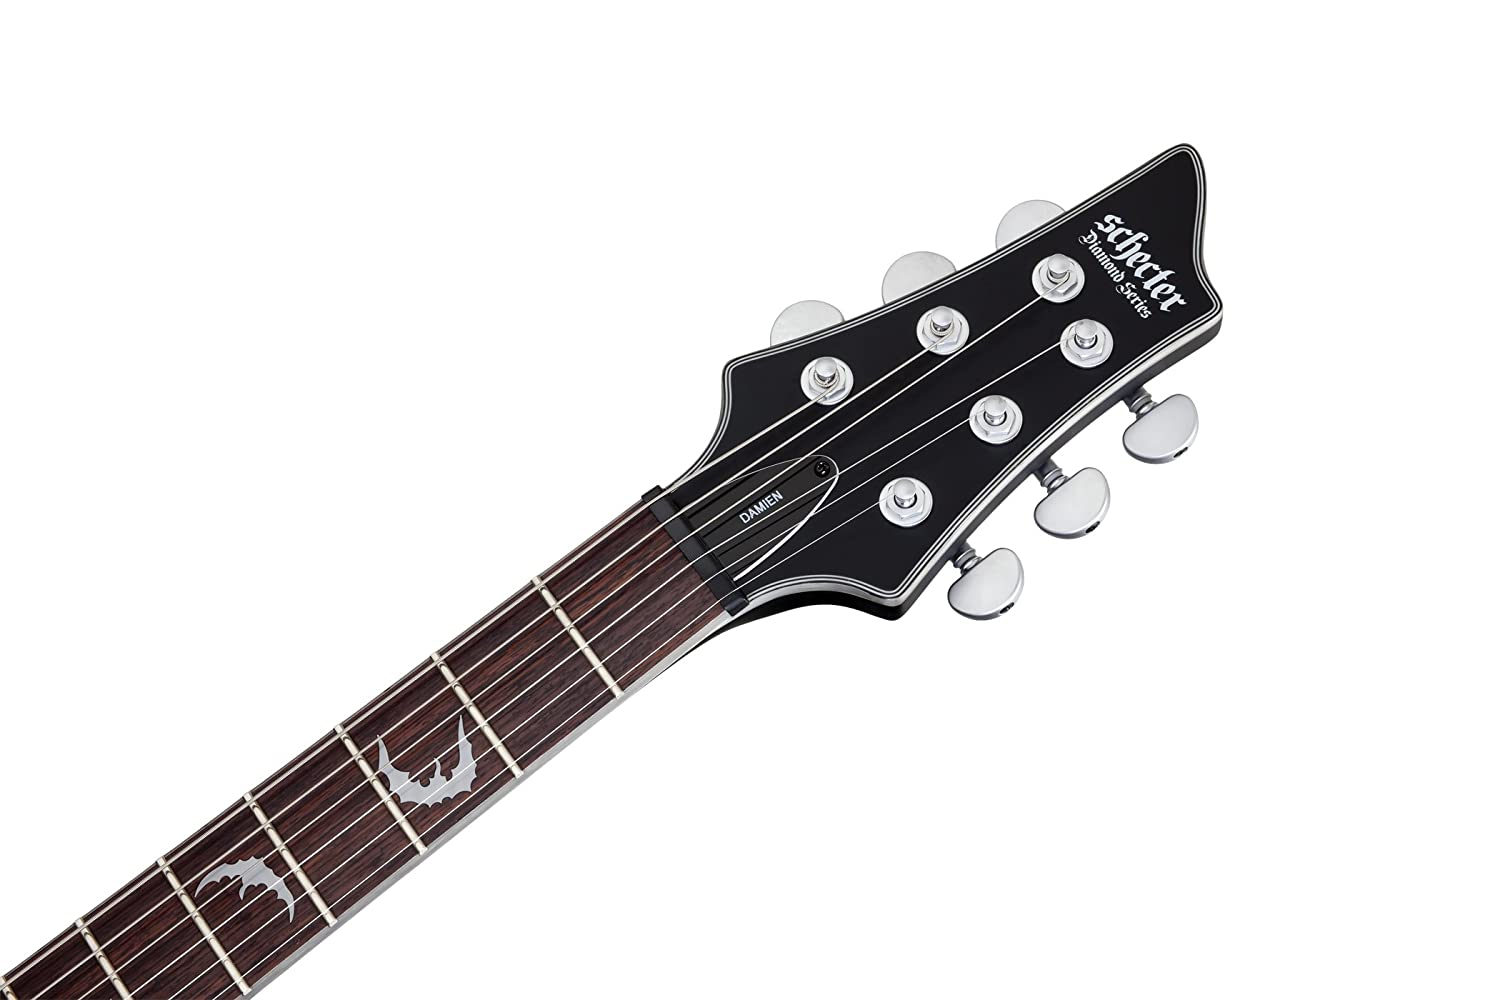 Amazon.com: Schecter Damien Platinum 6 Satin Black: Musical Instruments